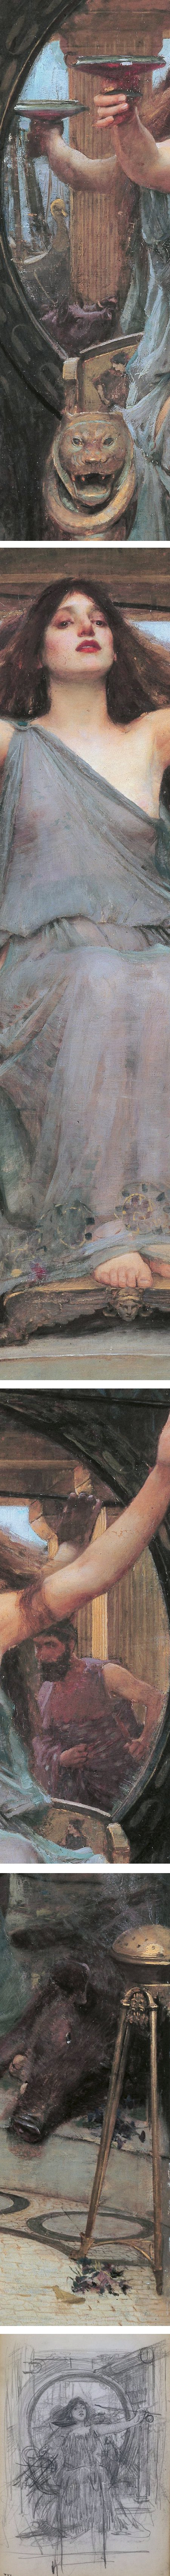 Circe Offering the Cup to Ulysses (details), John William Waterhouse